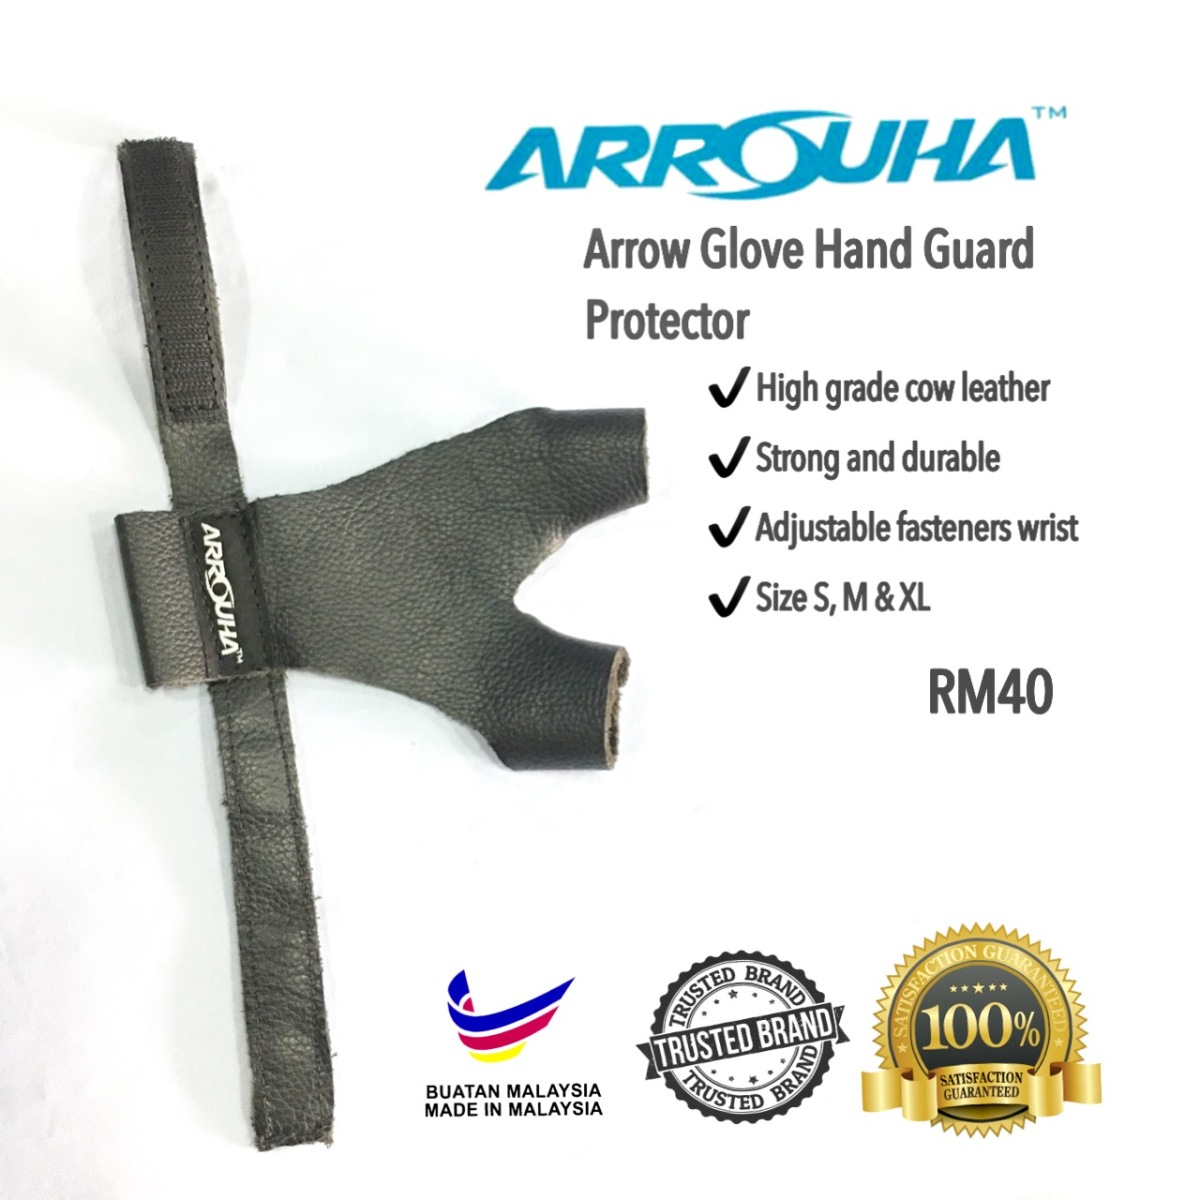 Arrouha™ Arrow Glove Hand Guard Protector